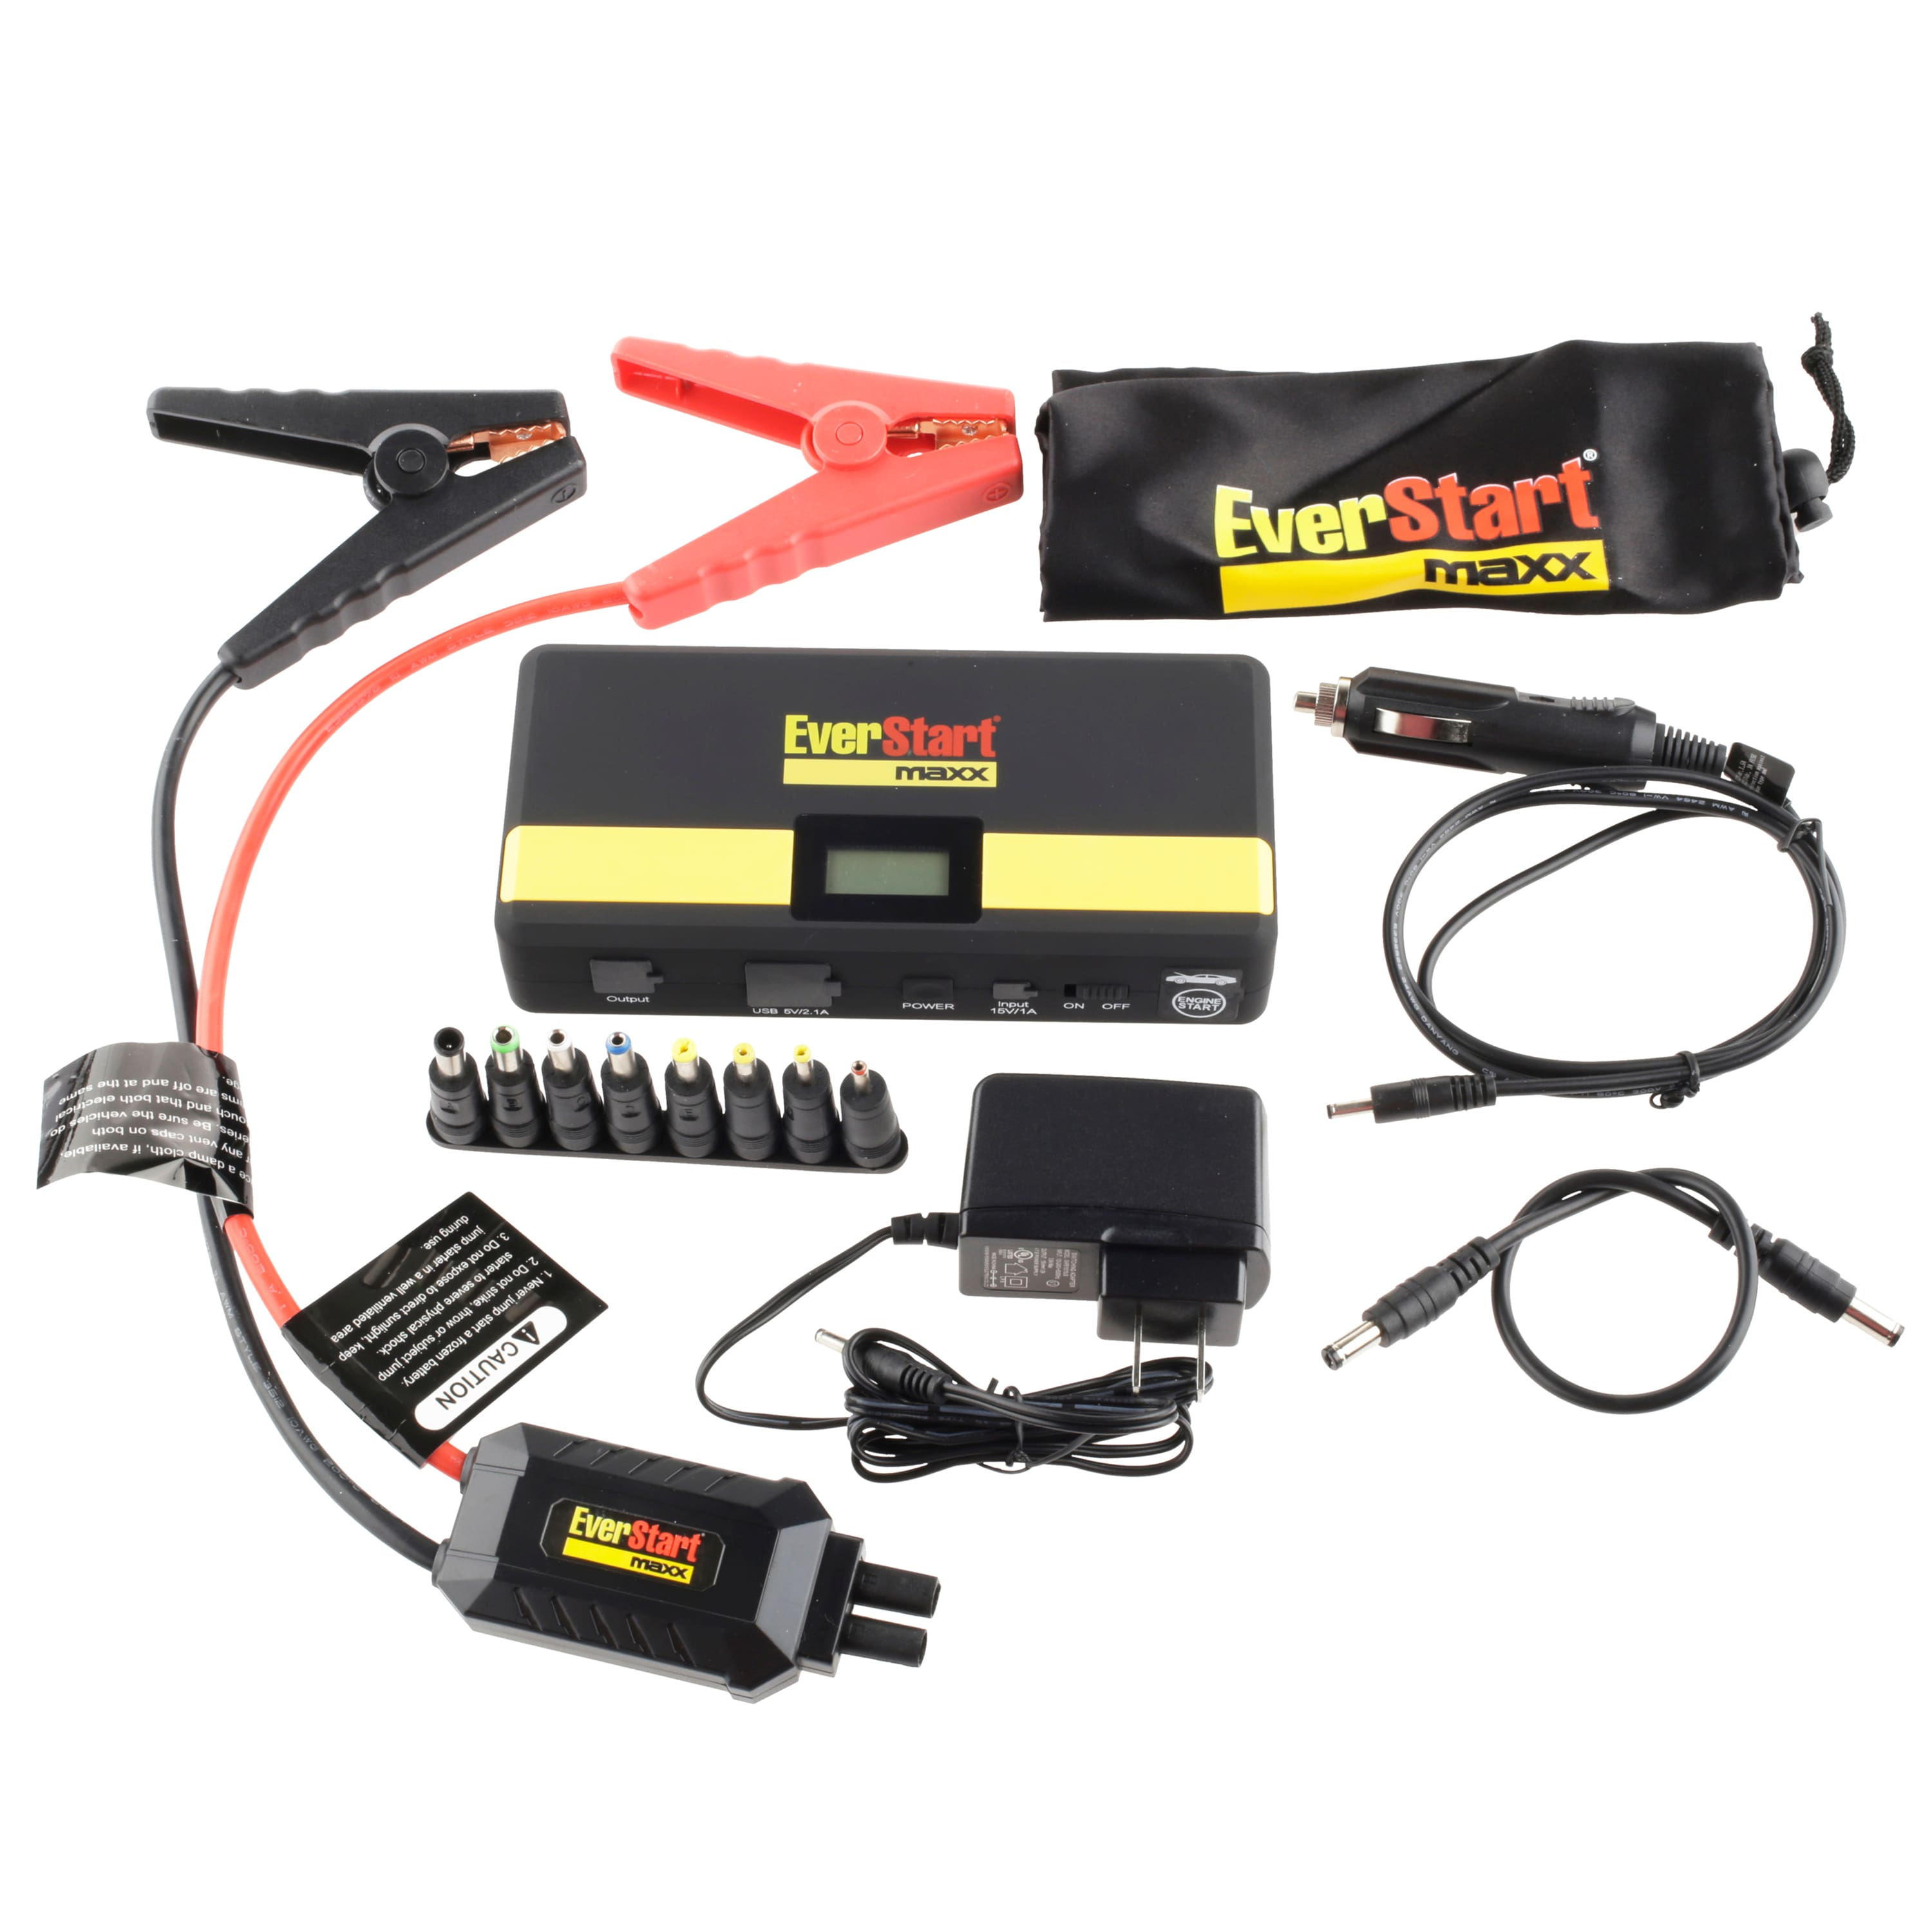 Everstart 600 Amp Lithium Ion Jump Starter Bundle (In store ymmv) $21